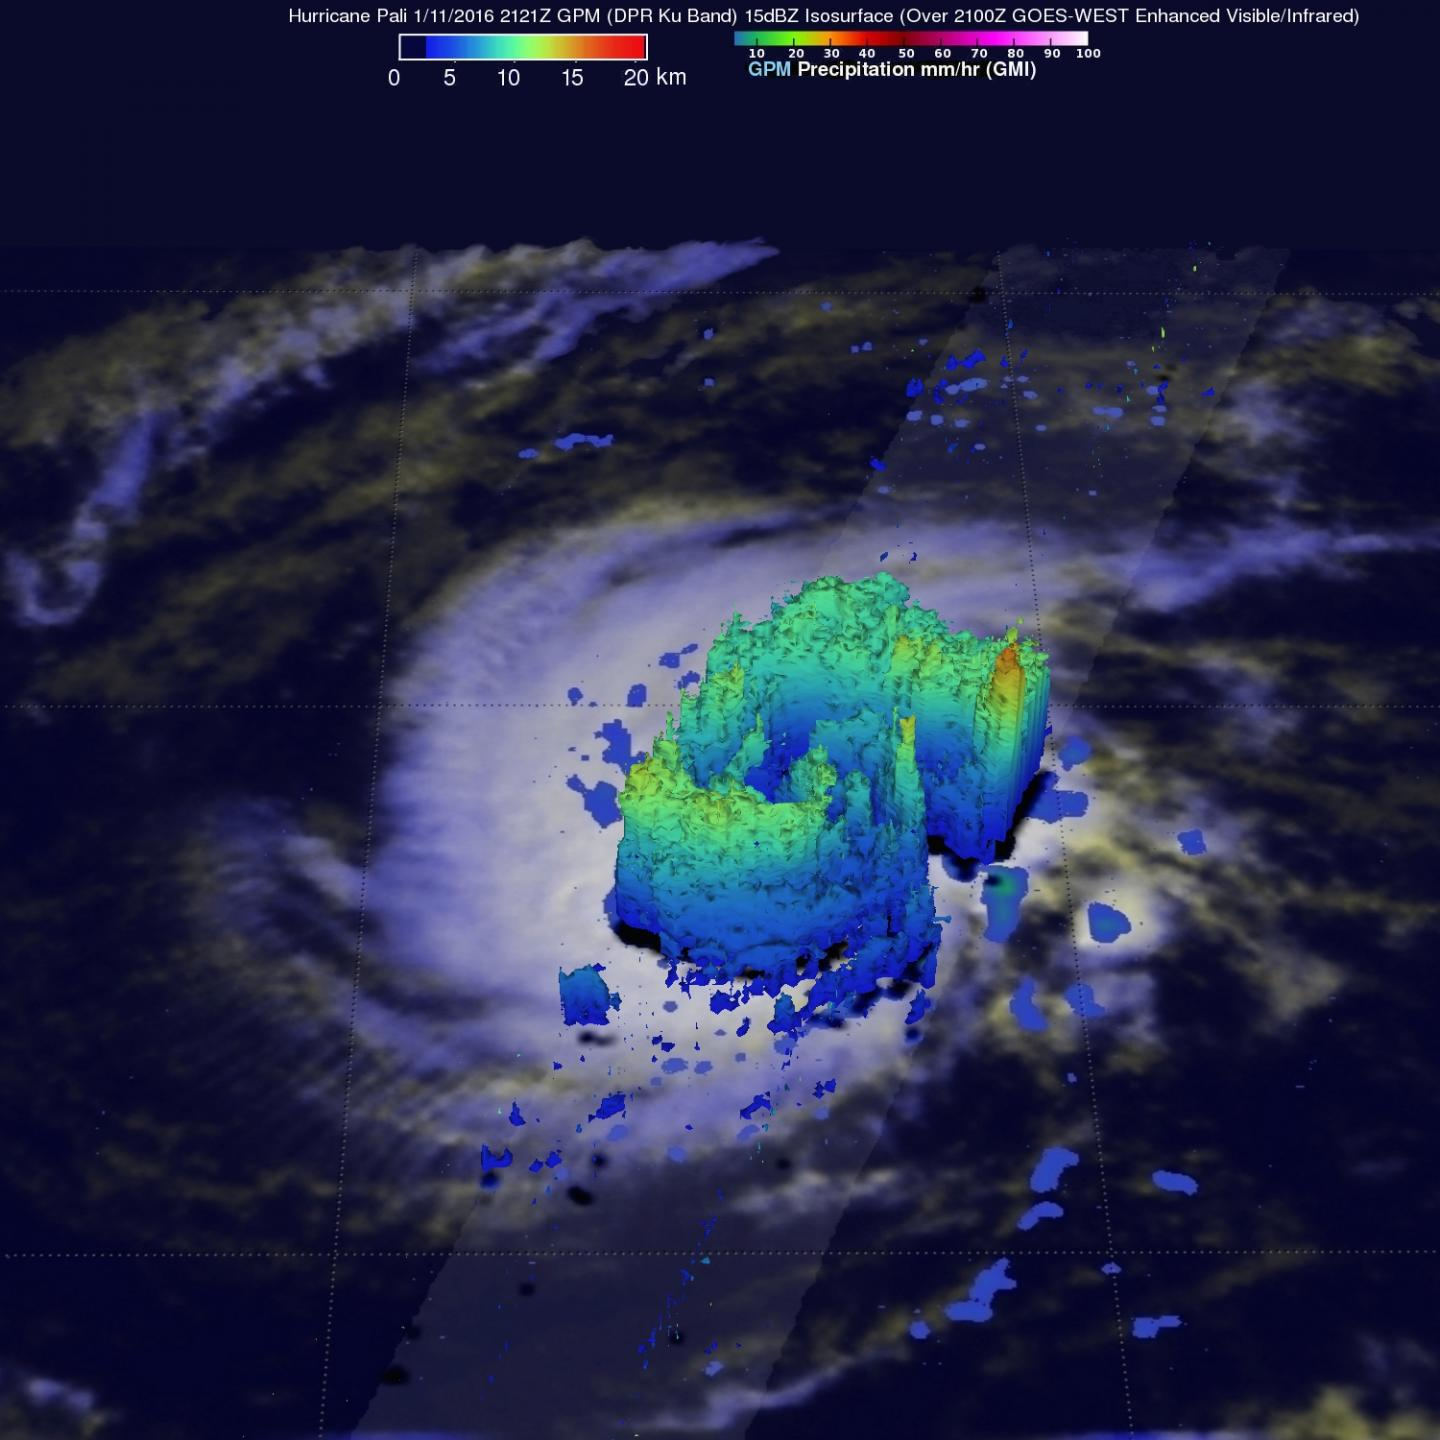 GPM 3-D Image of Pali